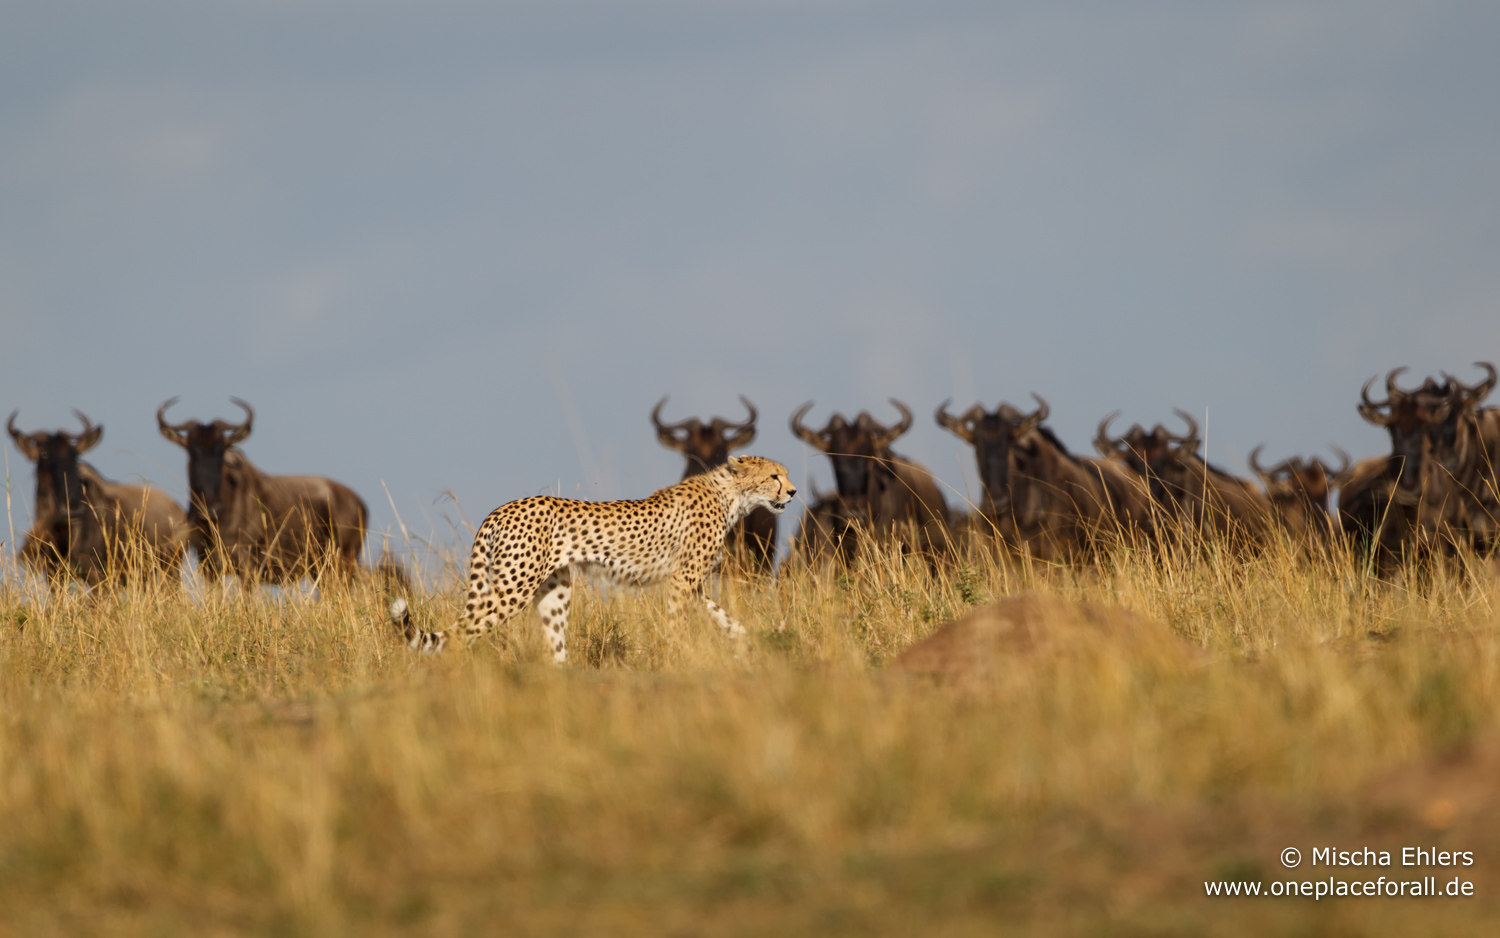 http://www.c4photosafaris.com/uploader/images/Cheetah_in_front_of_wildebeest.jpg